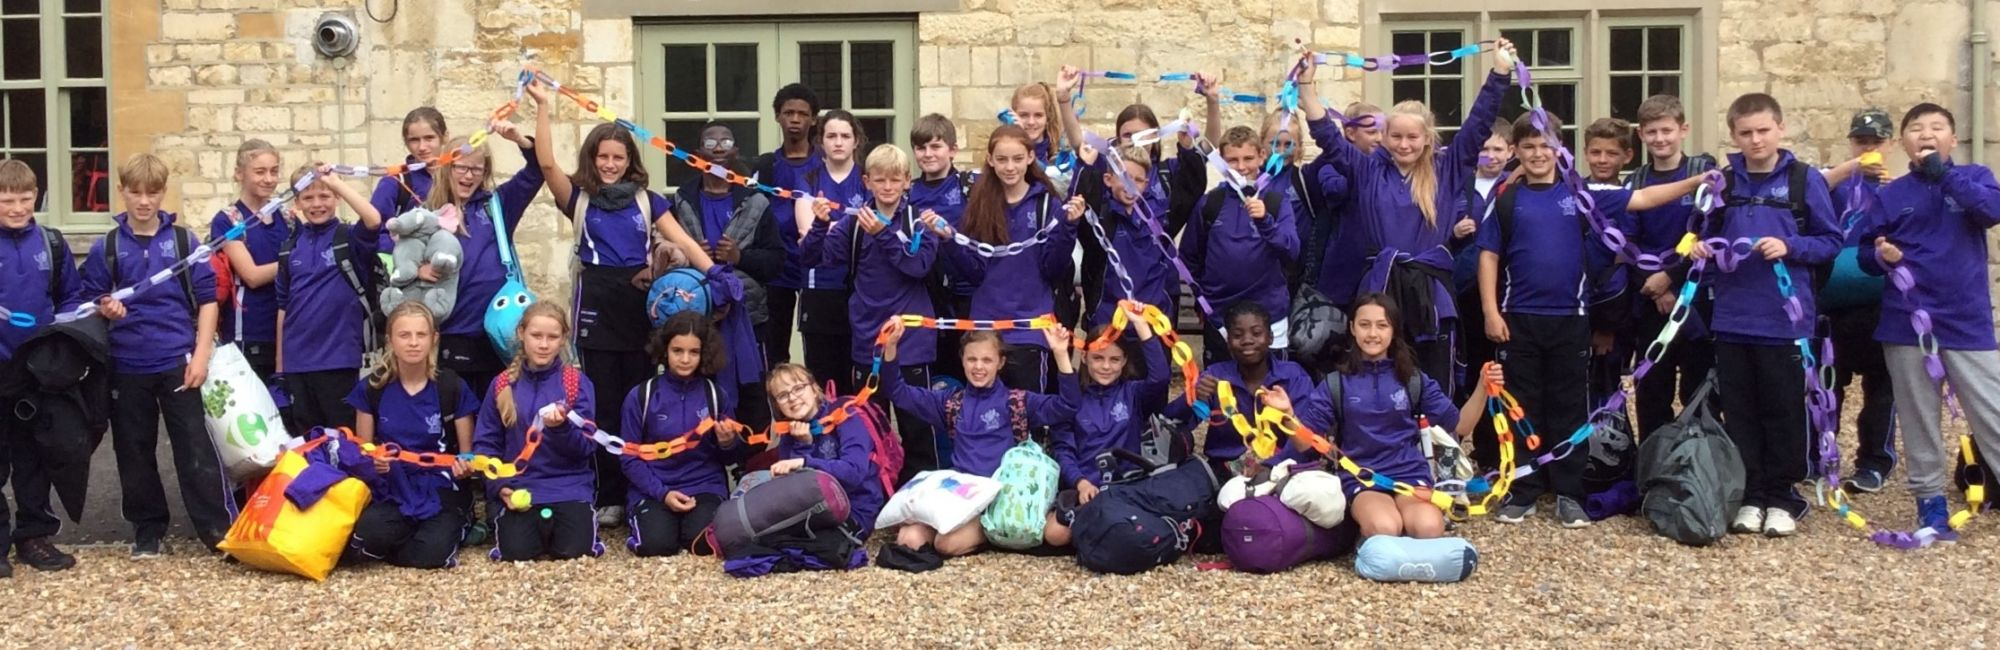 wycliffe pupils holding decorations outdoors